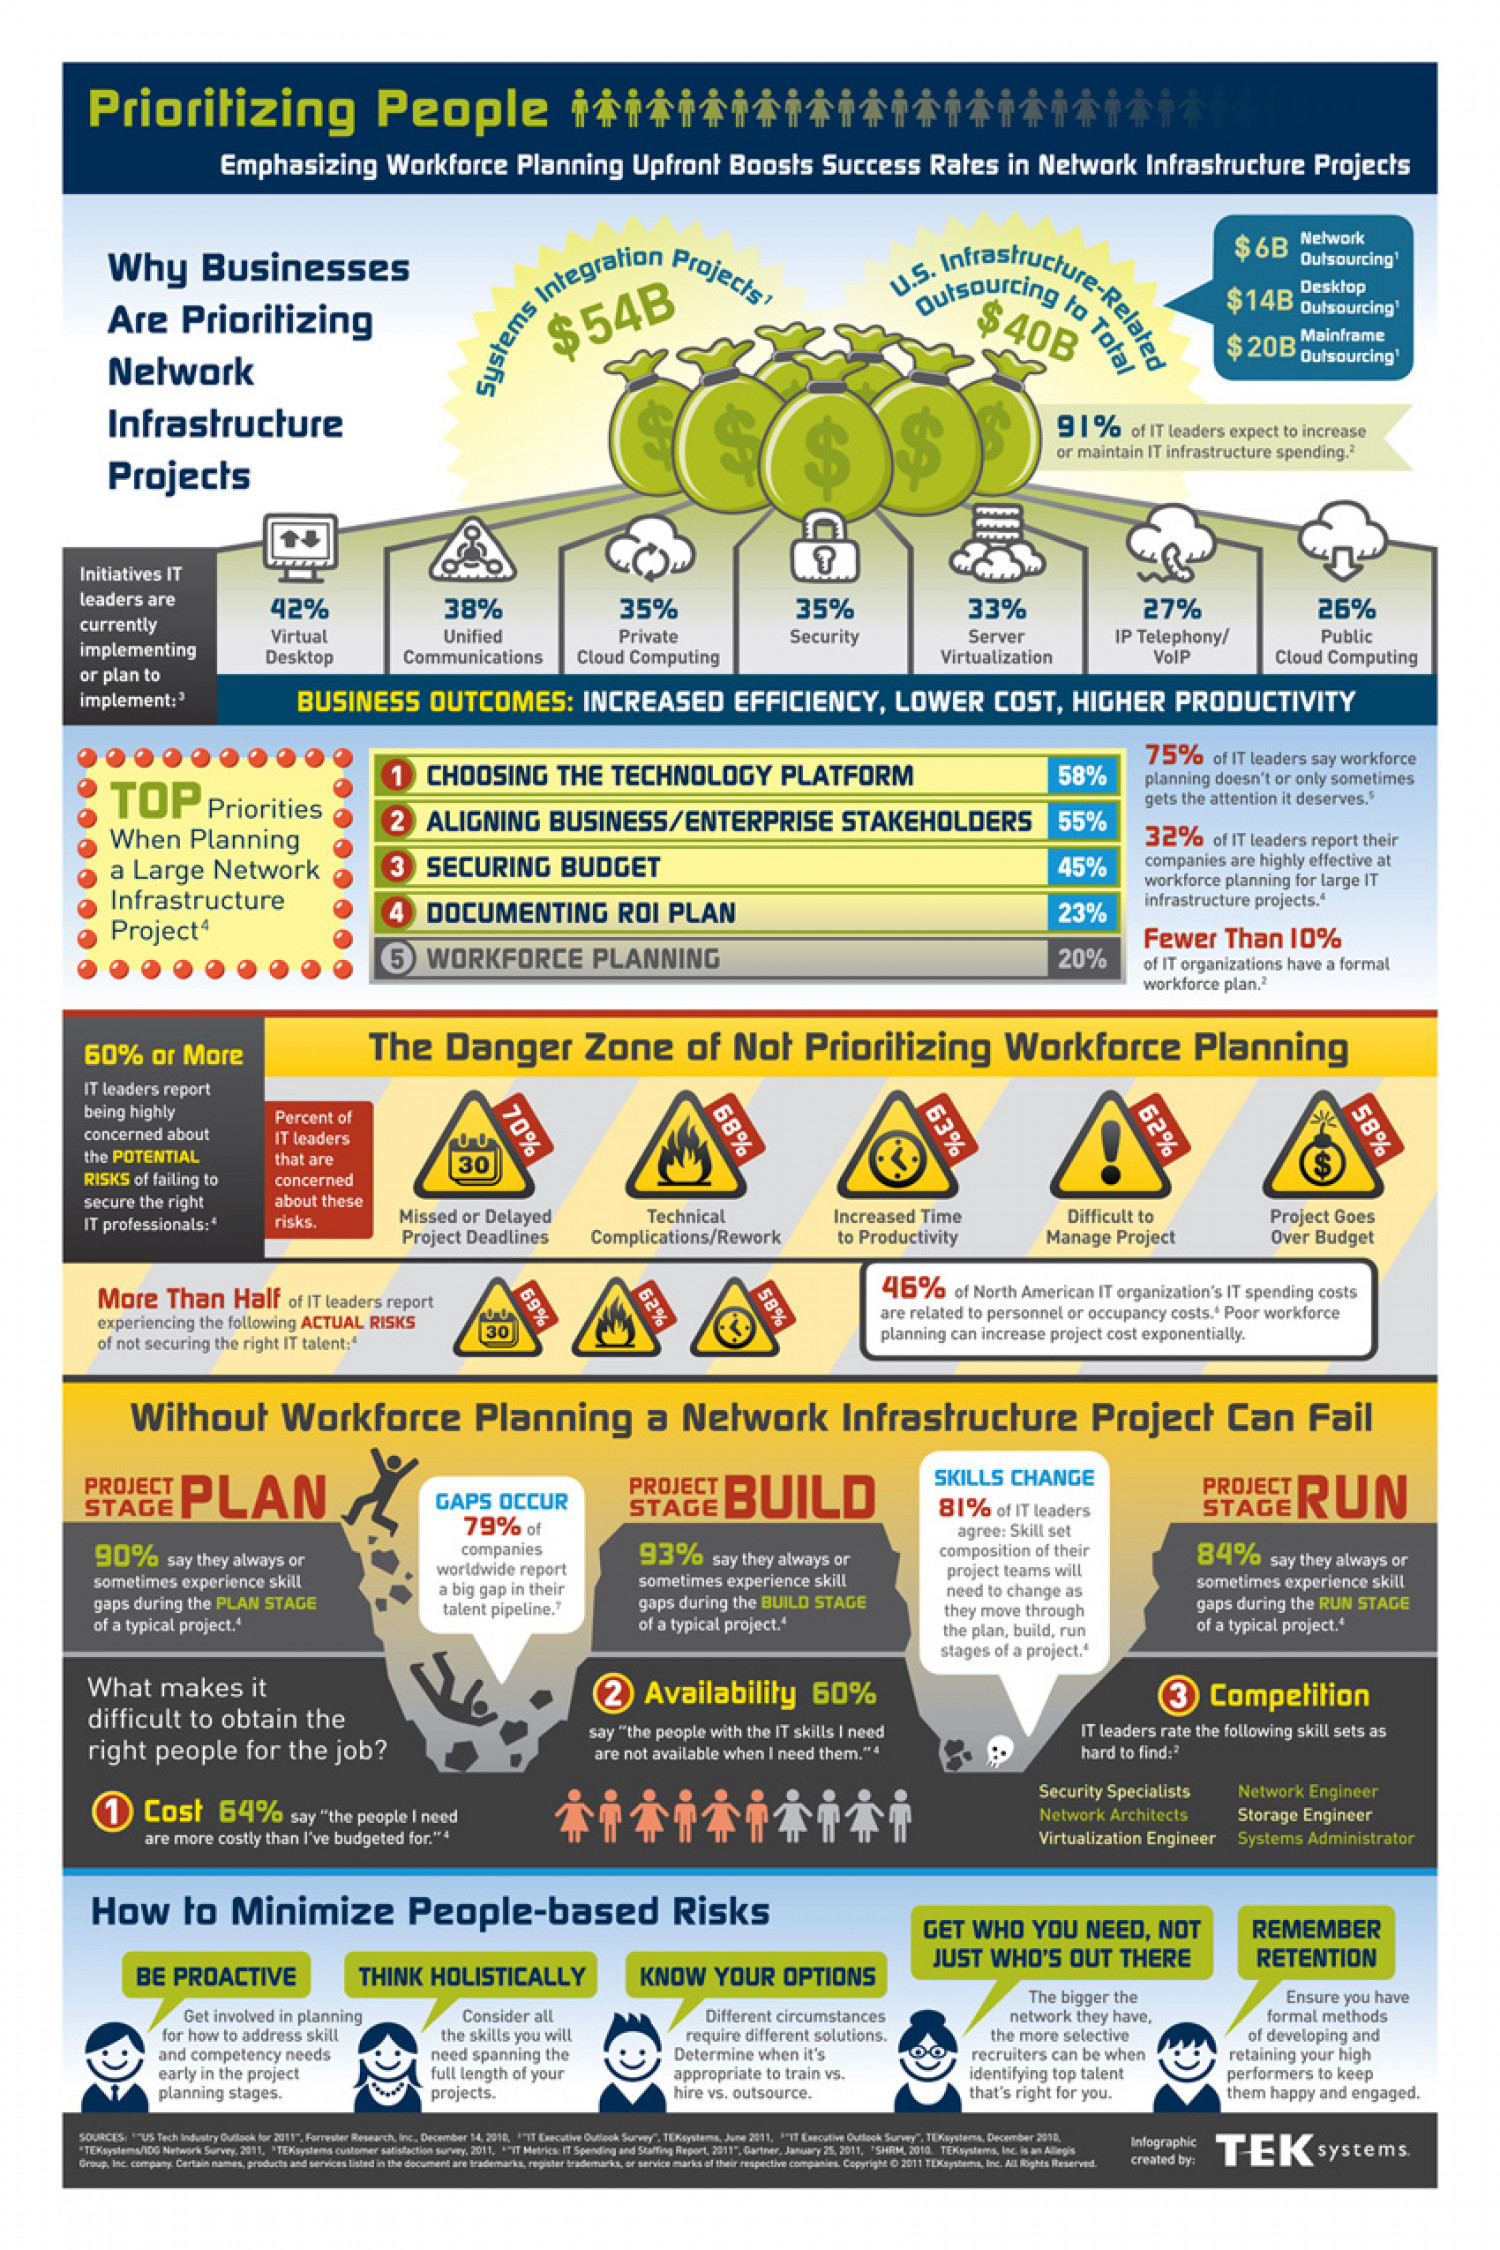 Workforce Planning: Prioritizing People in Network Infrastructure Projects Infographic